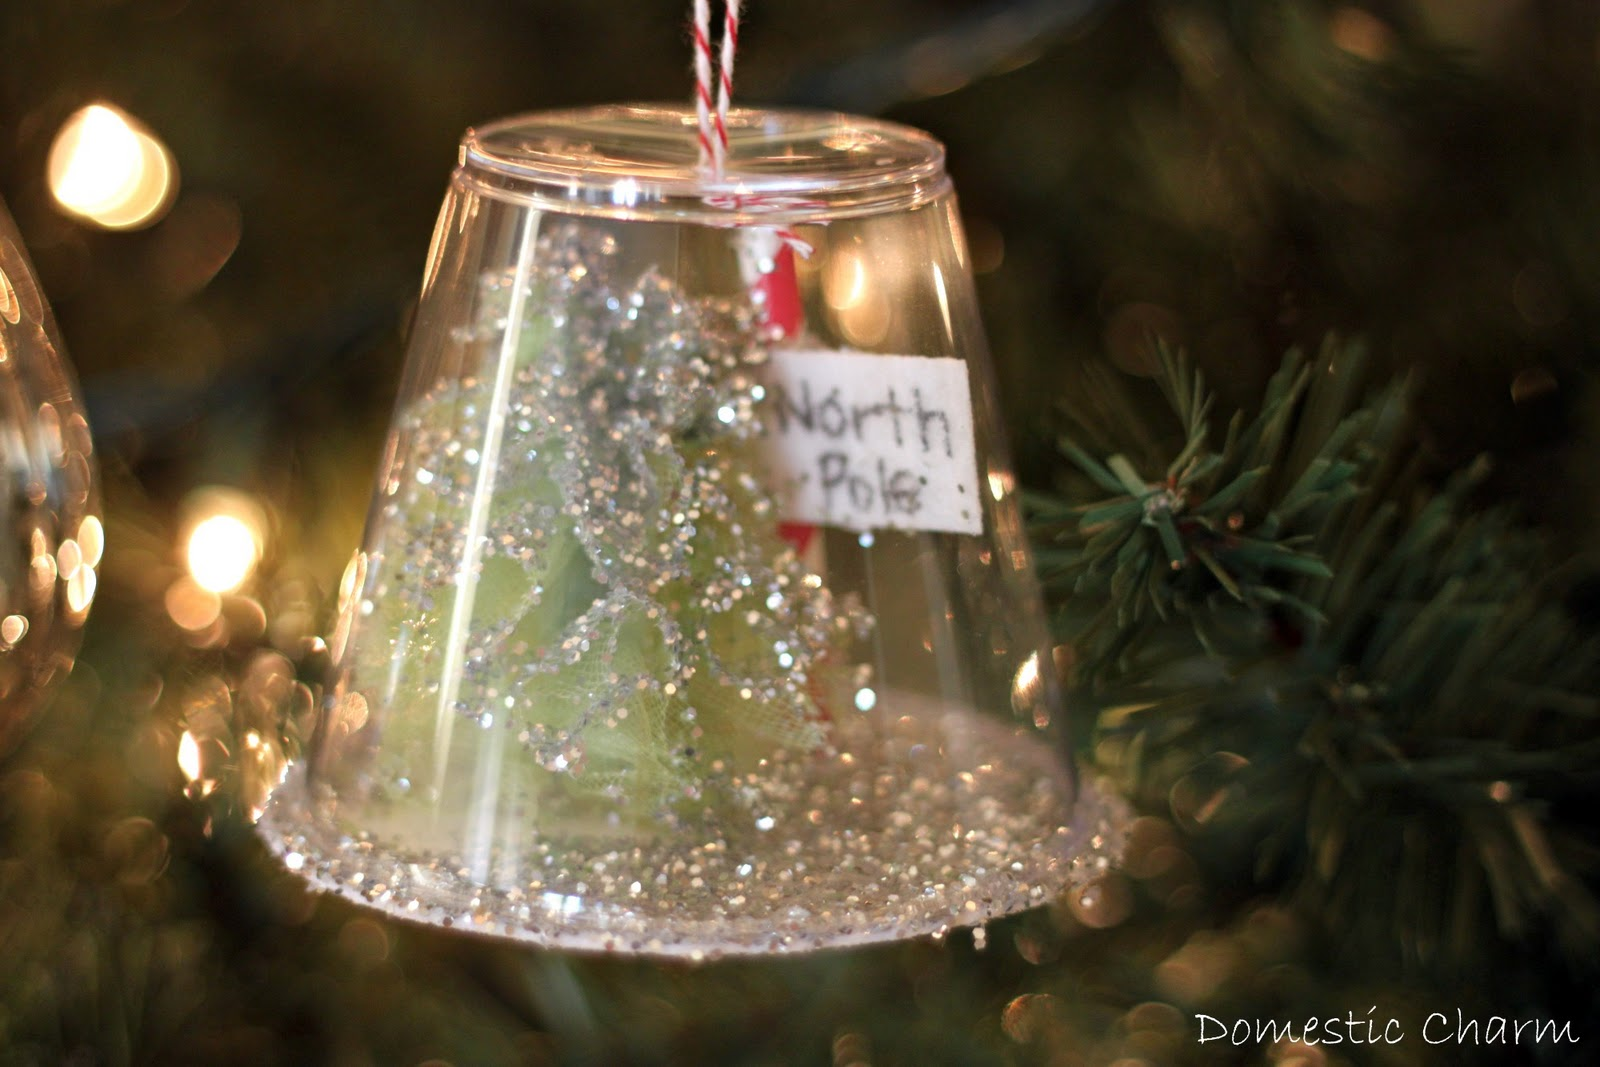 Domestic charm homemade christmas ornament for Home made christmas tree decorations